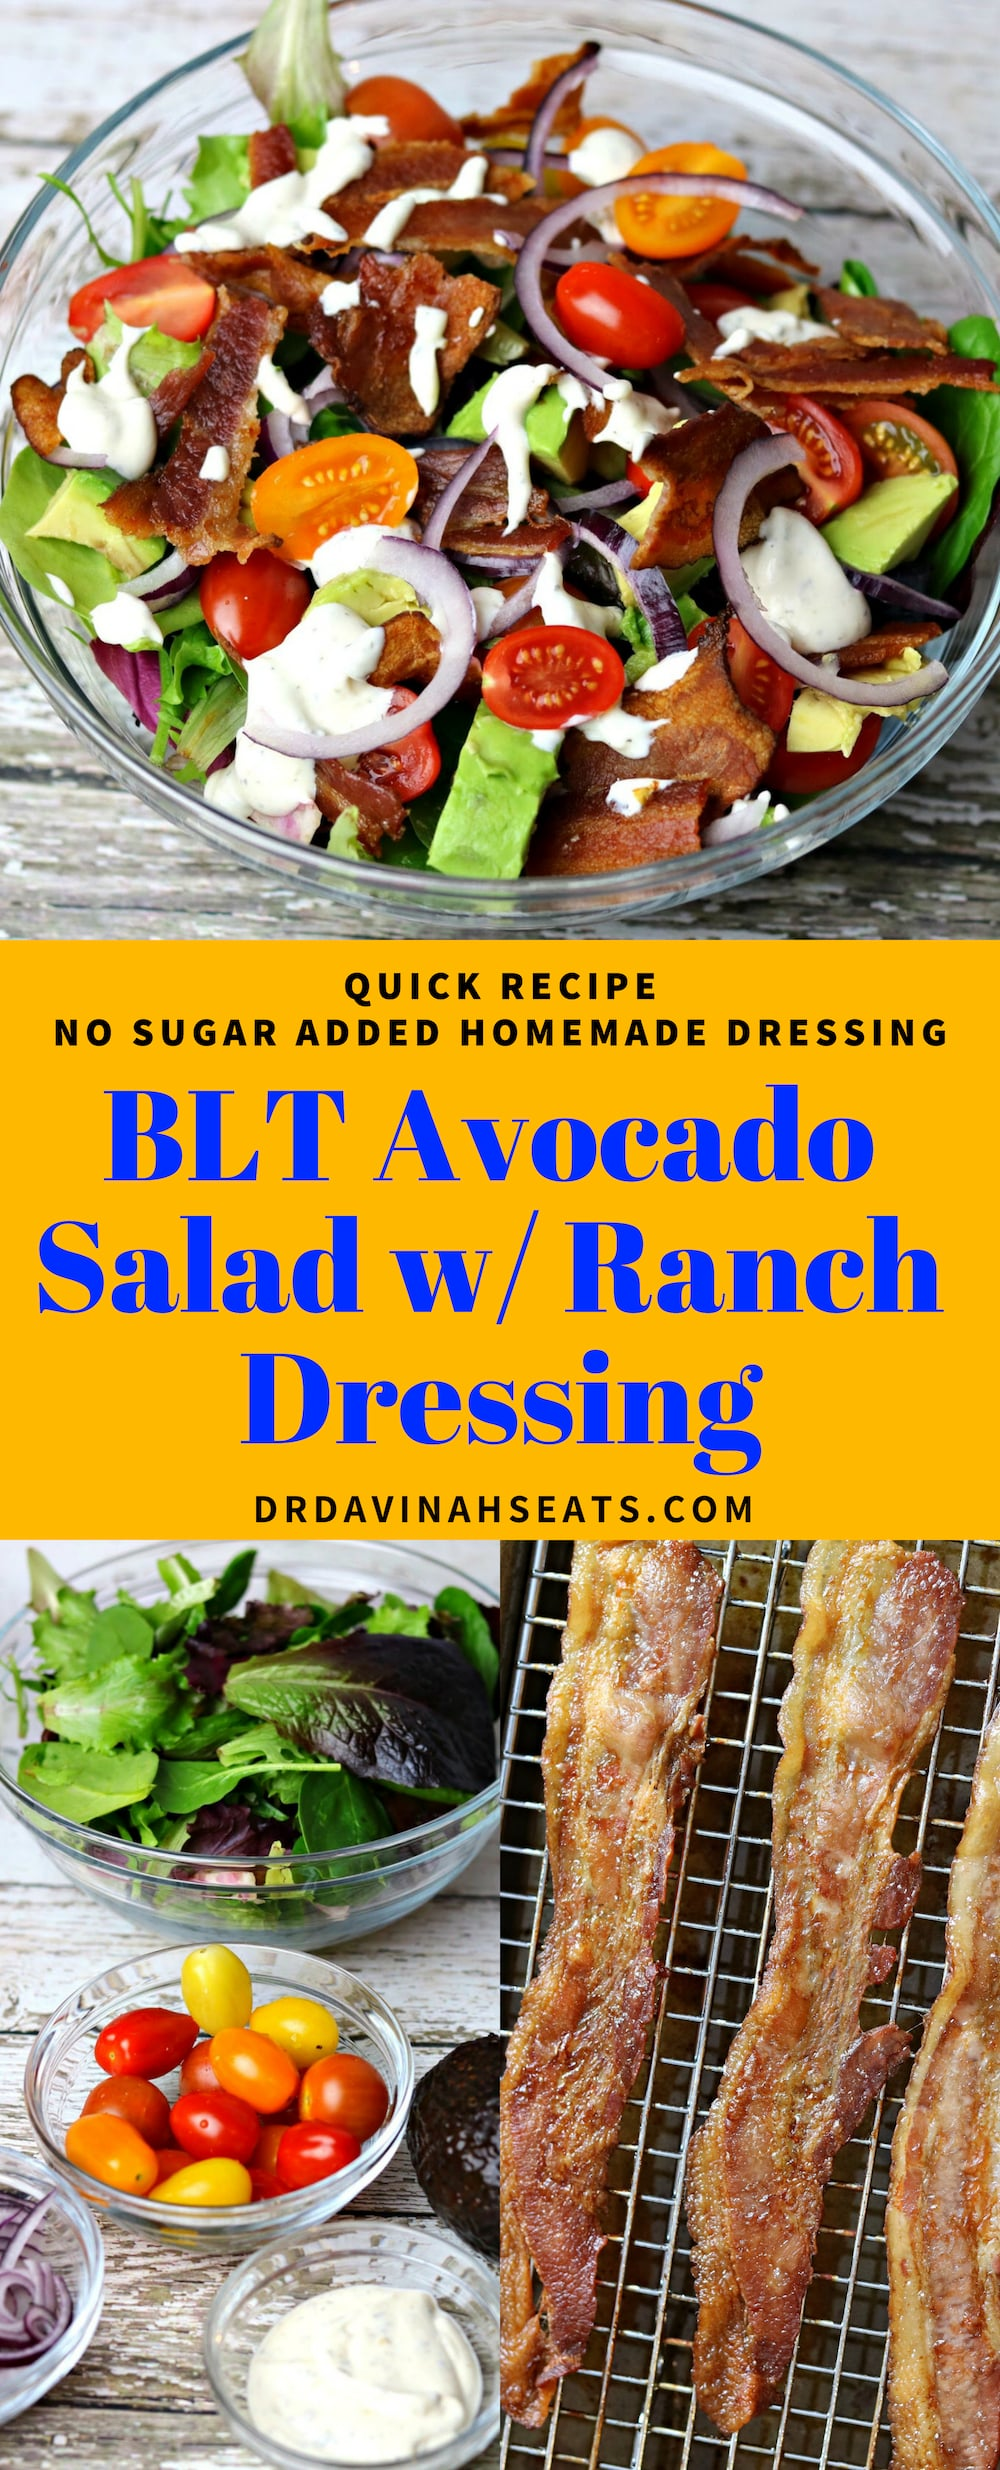 A keto & low carb salad version of the BLT sandwich. Includes all of the flavors of the BLT and a recipe for homemade ranch dressing. #keto #lowcarb #blt #avocado #ranchdressing #ketorecipes #lowcarbrecipes #quickmeal